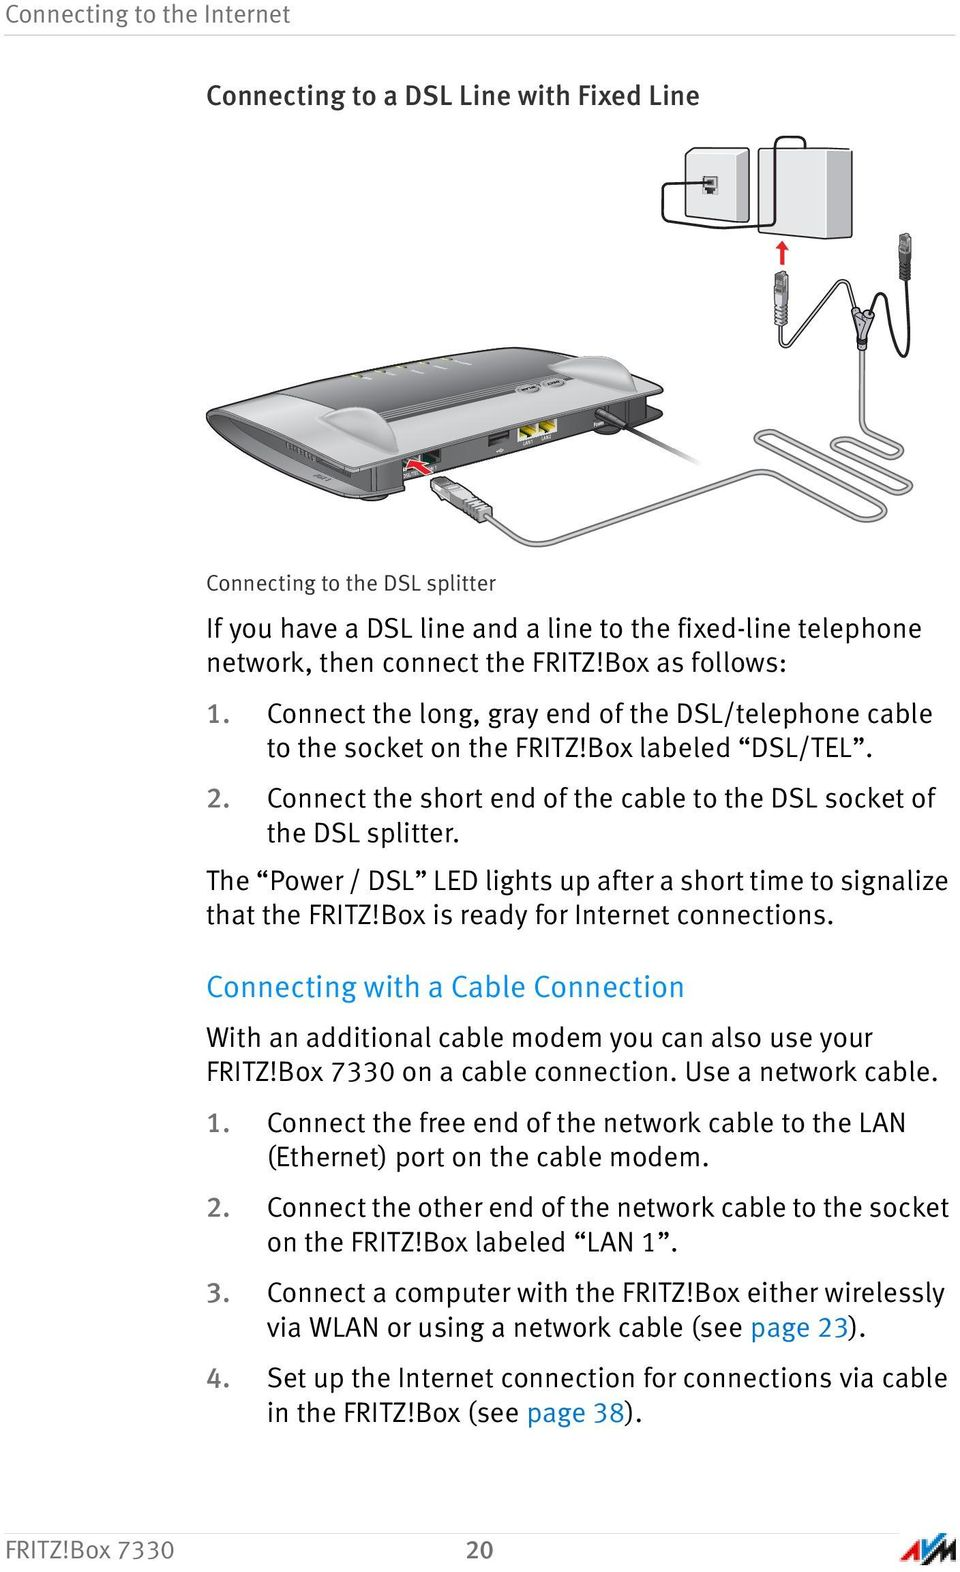 Fritzbox Installation And Operation Pdf Wiring Diagram For Dsl Inter On Phone Line Splitter Connect The Short End Of Cable To Socket